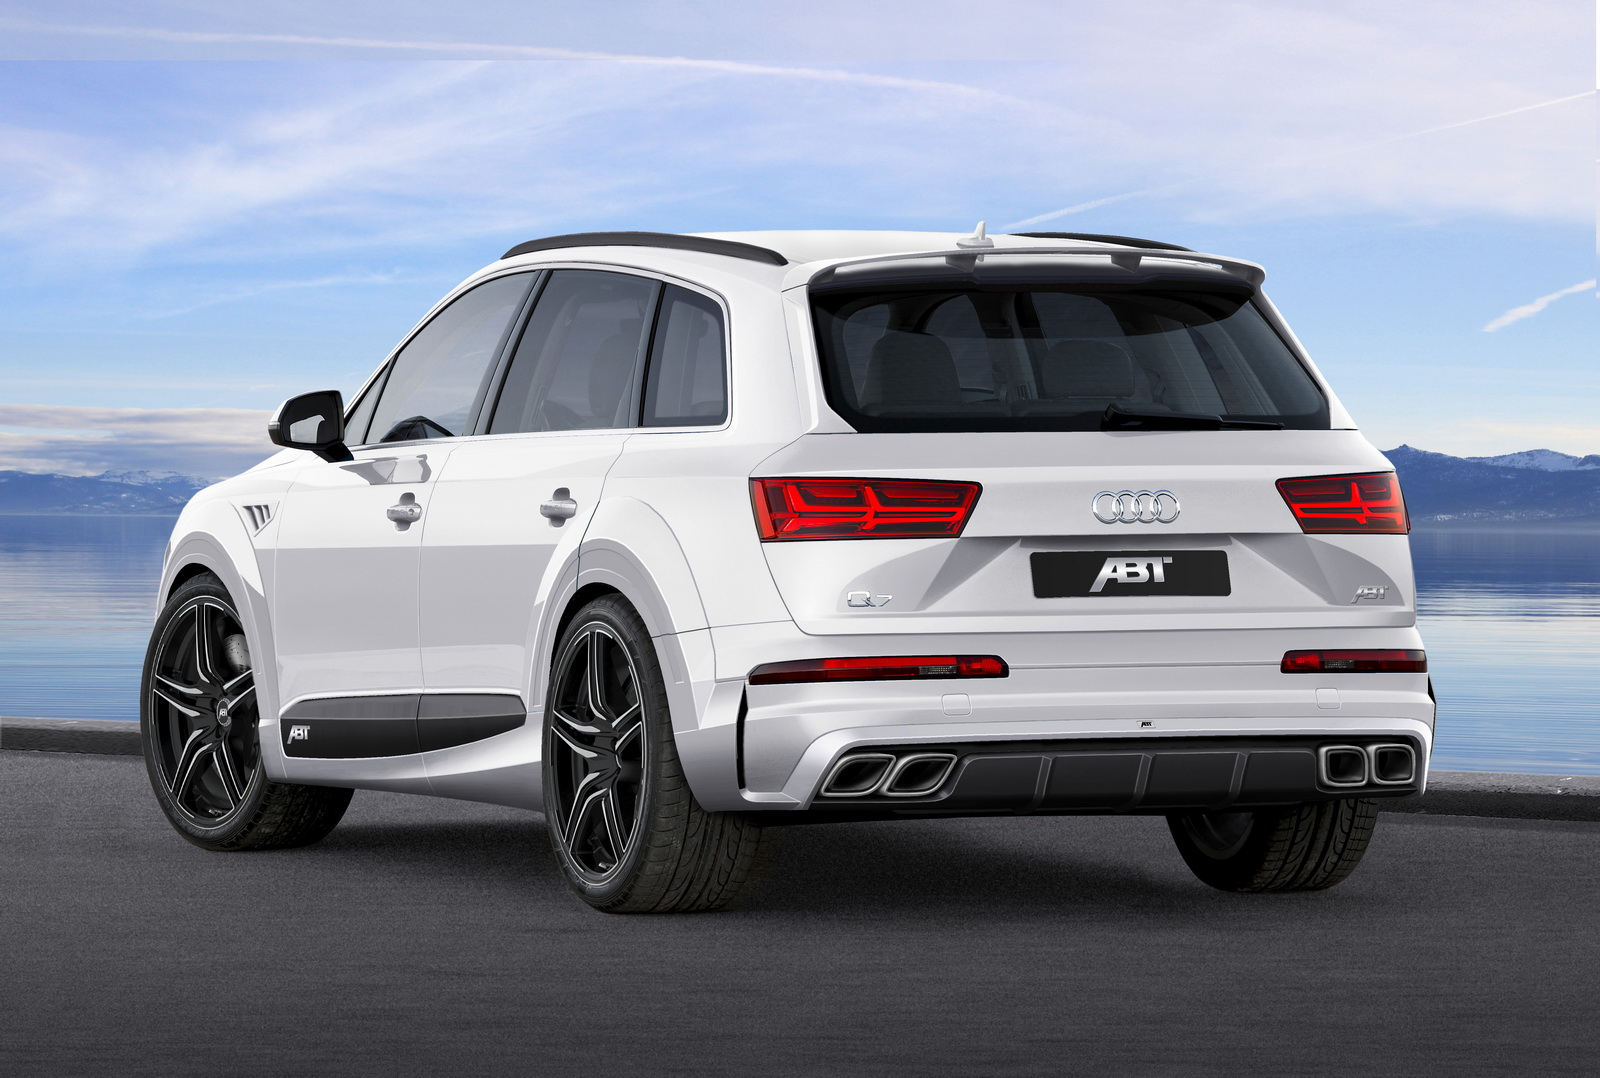 Audi Sq7 Usa Release >> ABT Dresses Audi Q7 in Sportier Clothes, Calls It The QS7 | Carscoops